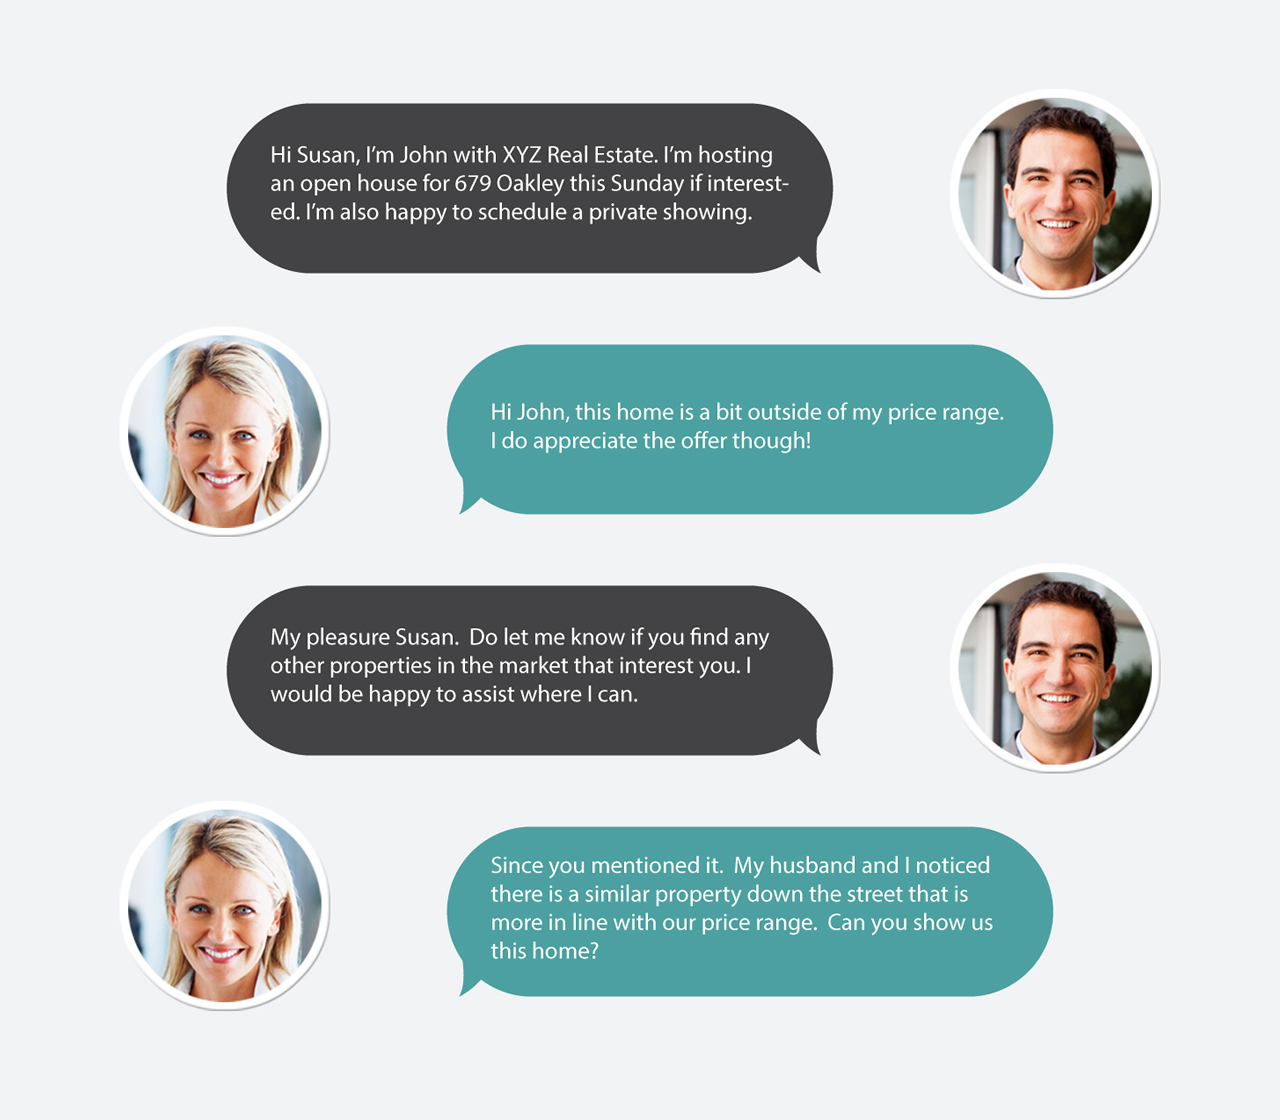 Building Relationships Through Mobile Consumer Engagement